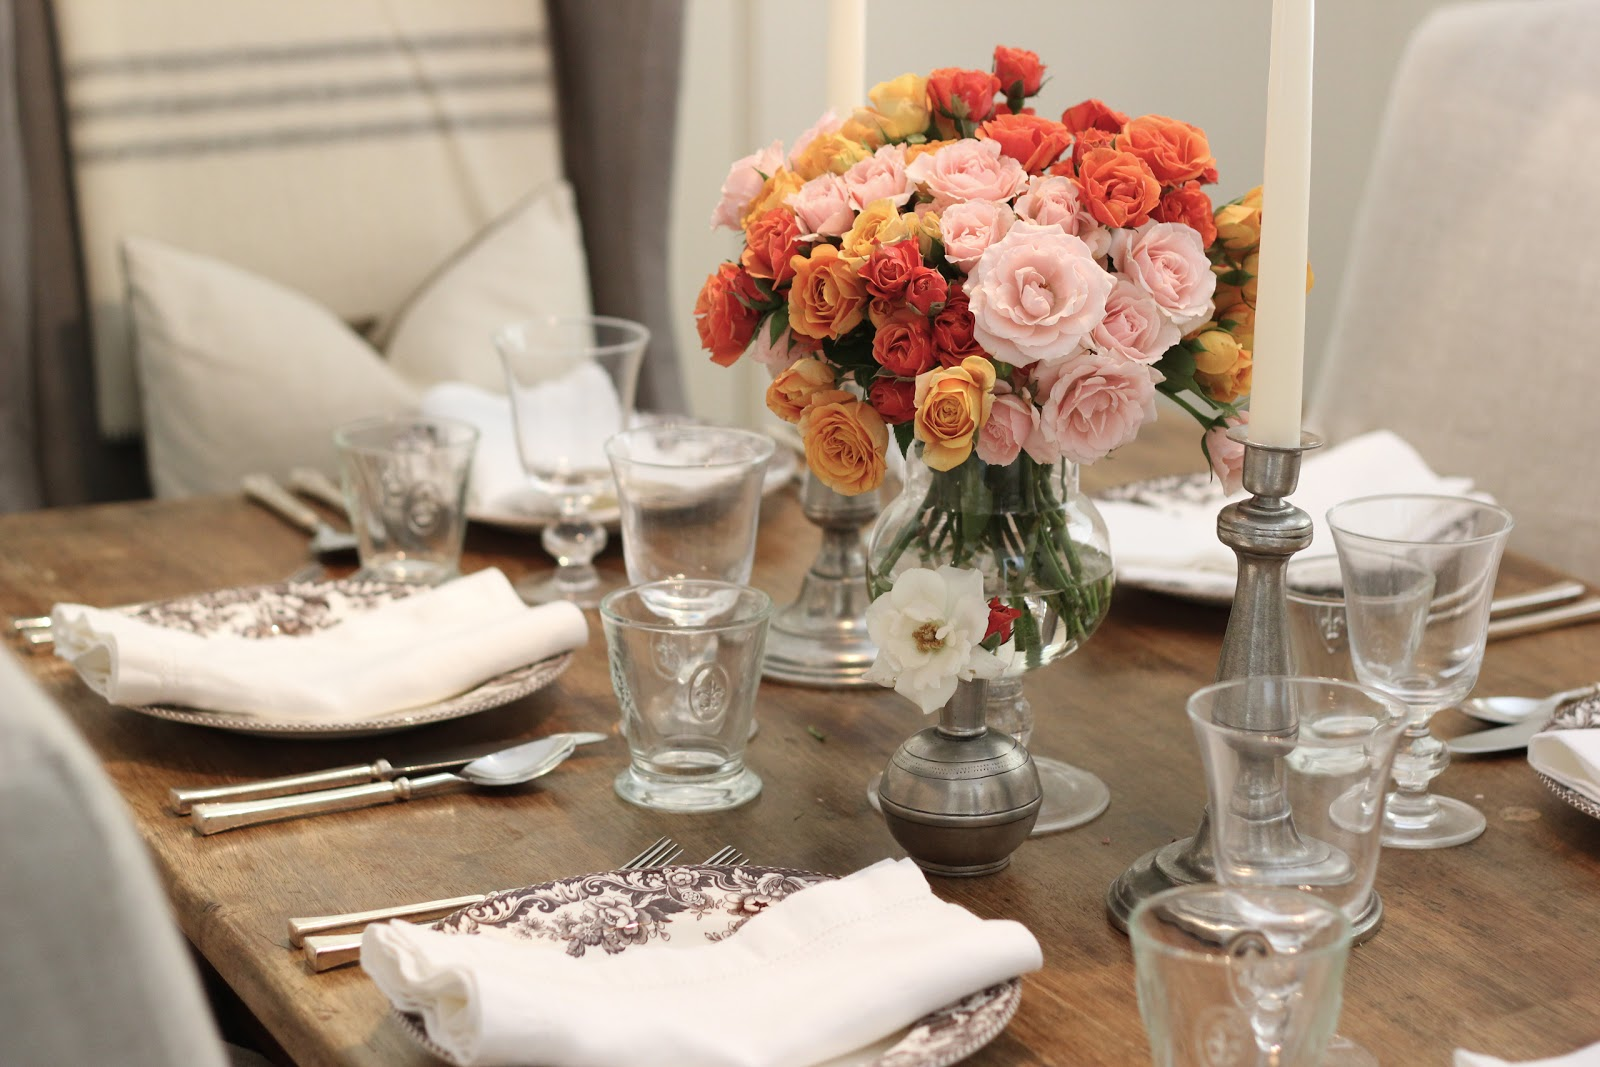 Jenny steffens hobick valentine 39 s day dinner party table for How to set a beautiful dinner table